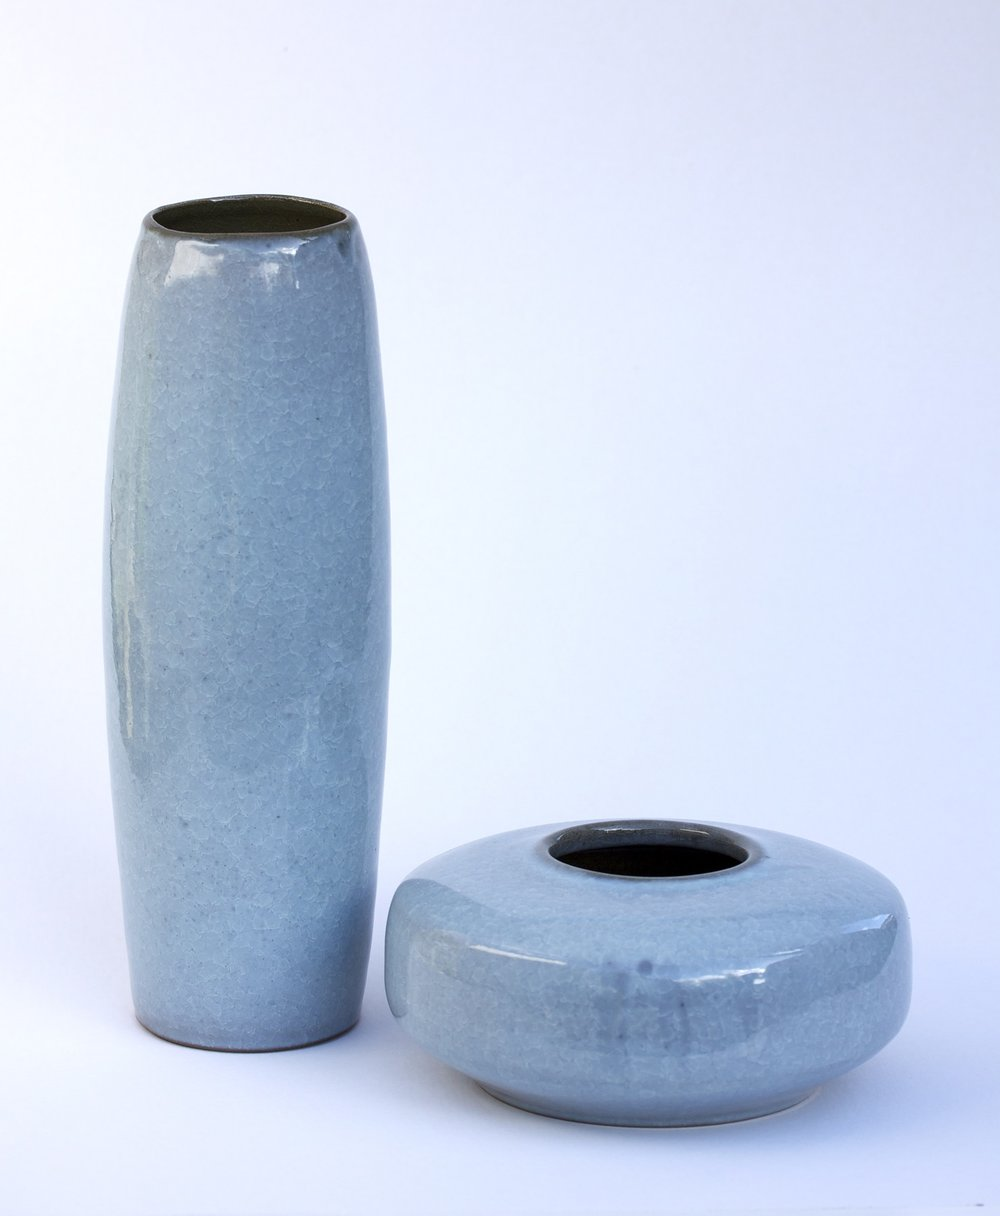 Vase Series, fishscale glaze, varying sizes, 300mm h.jpg